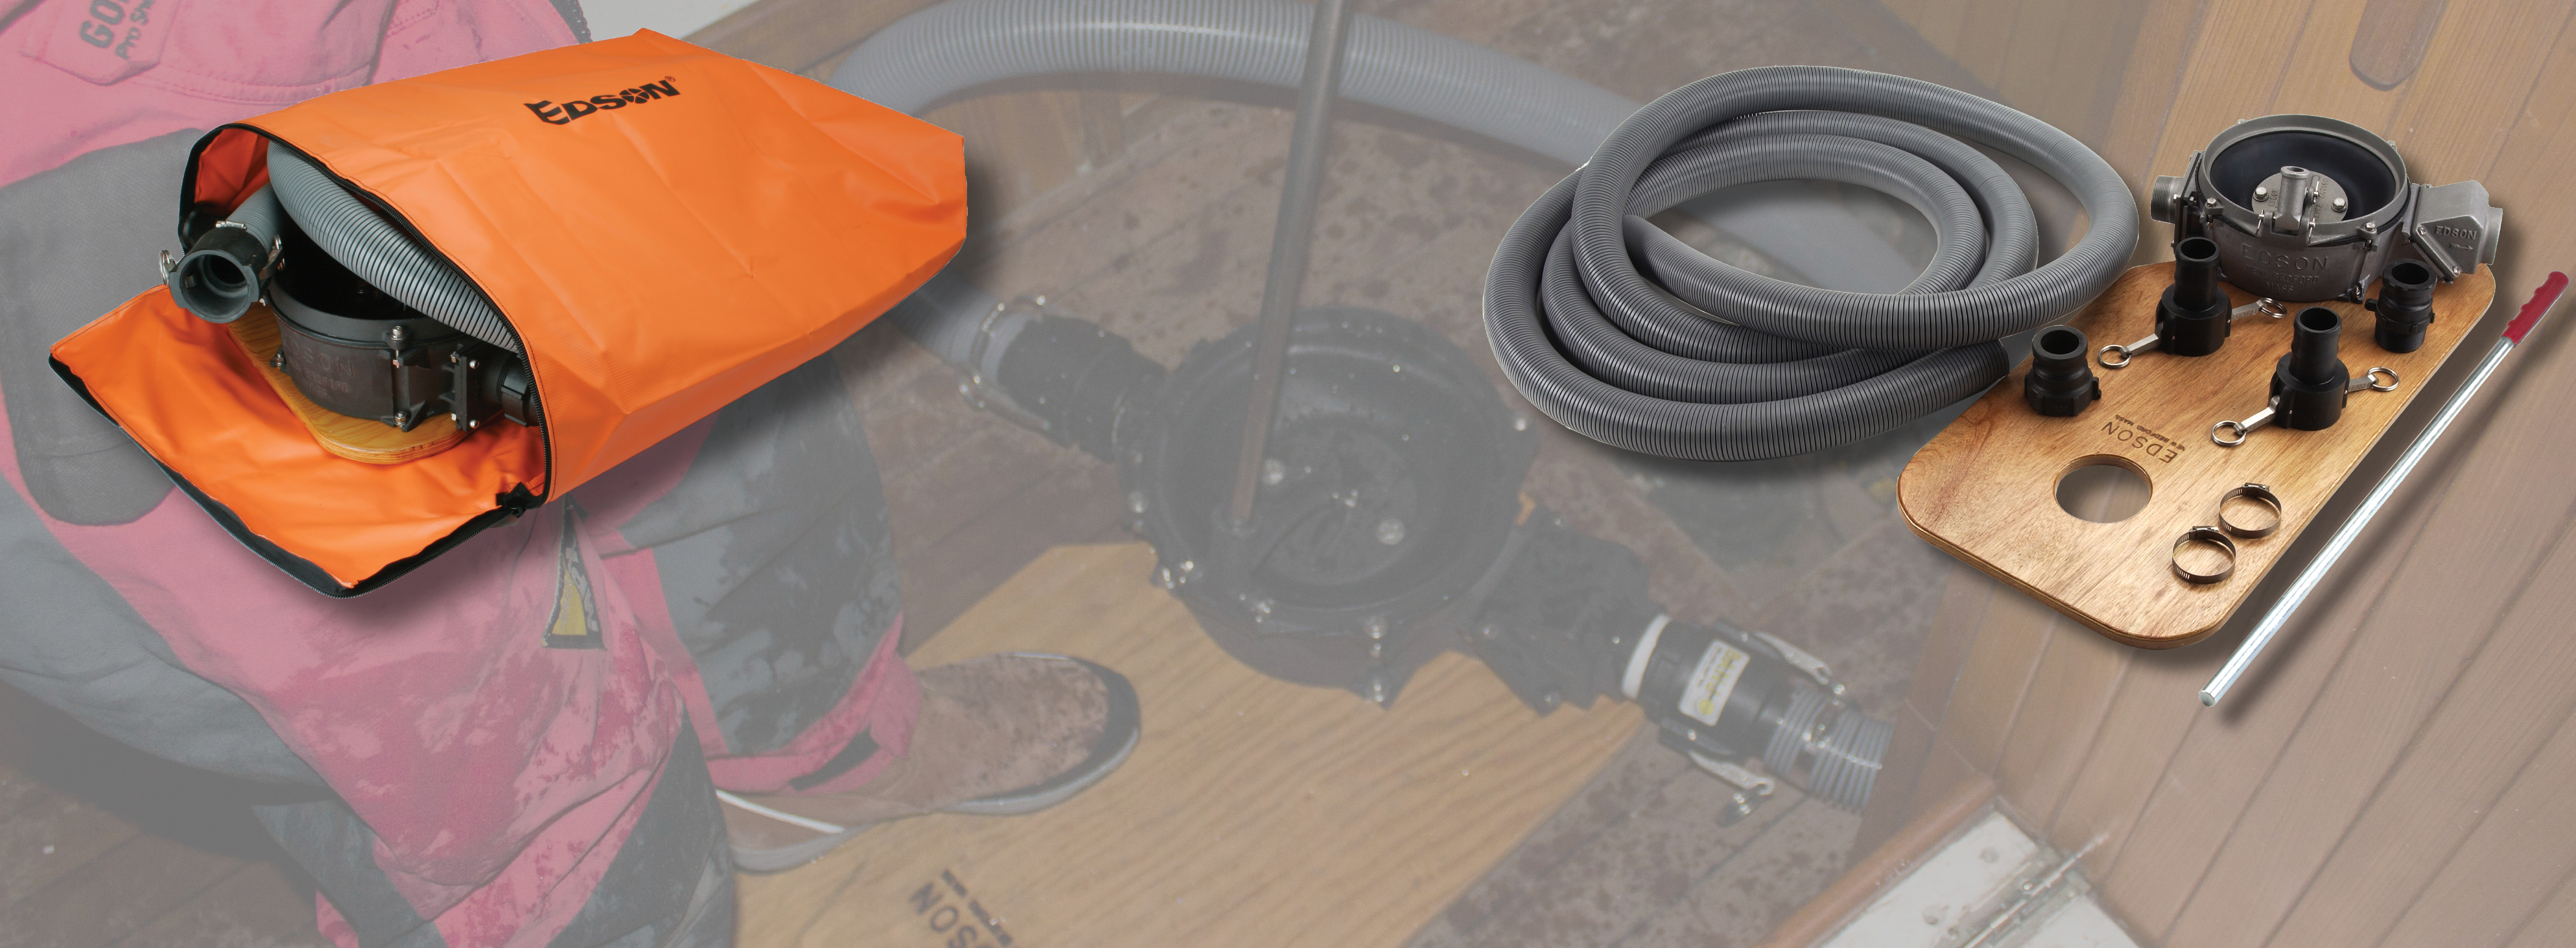 portable-pump-kit-page-banner-small.jpg